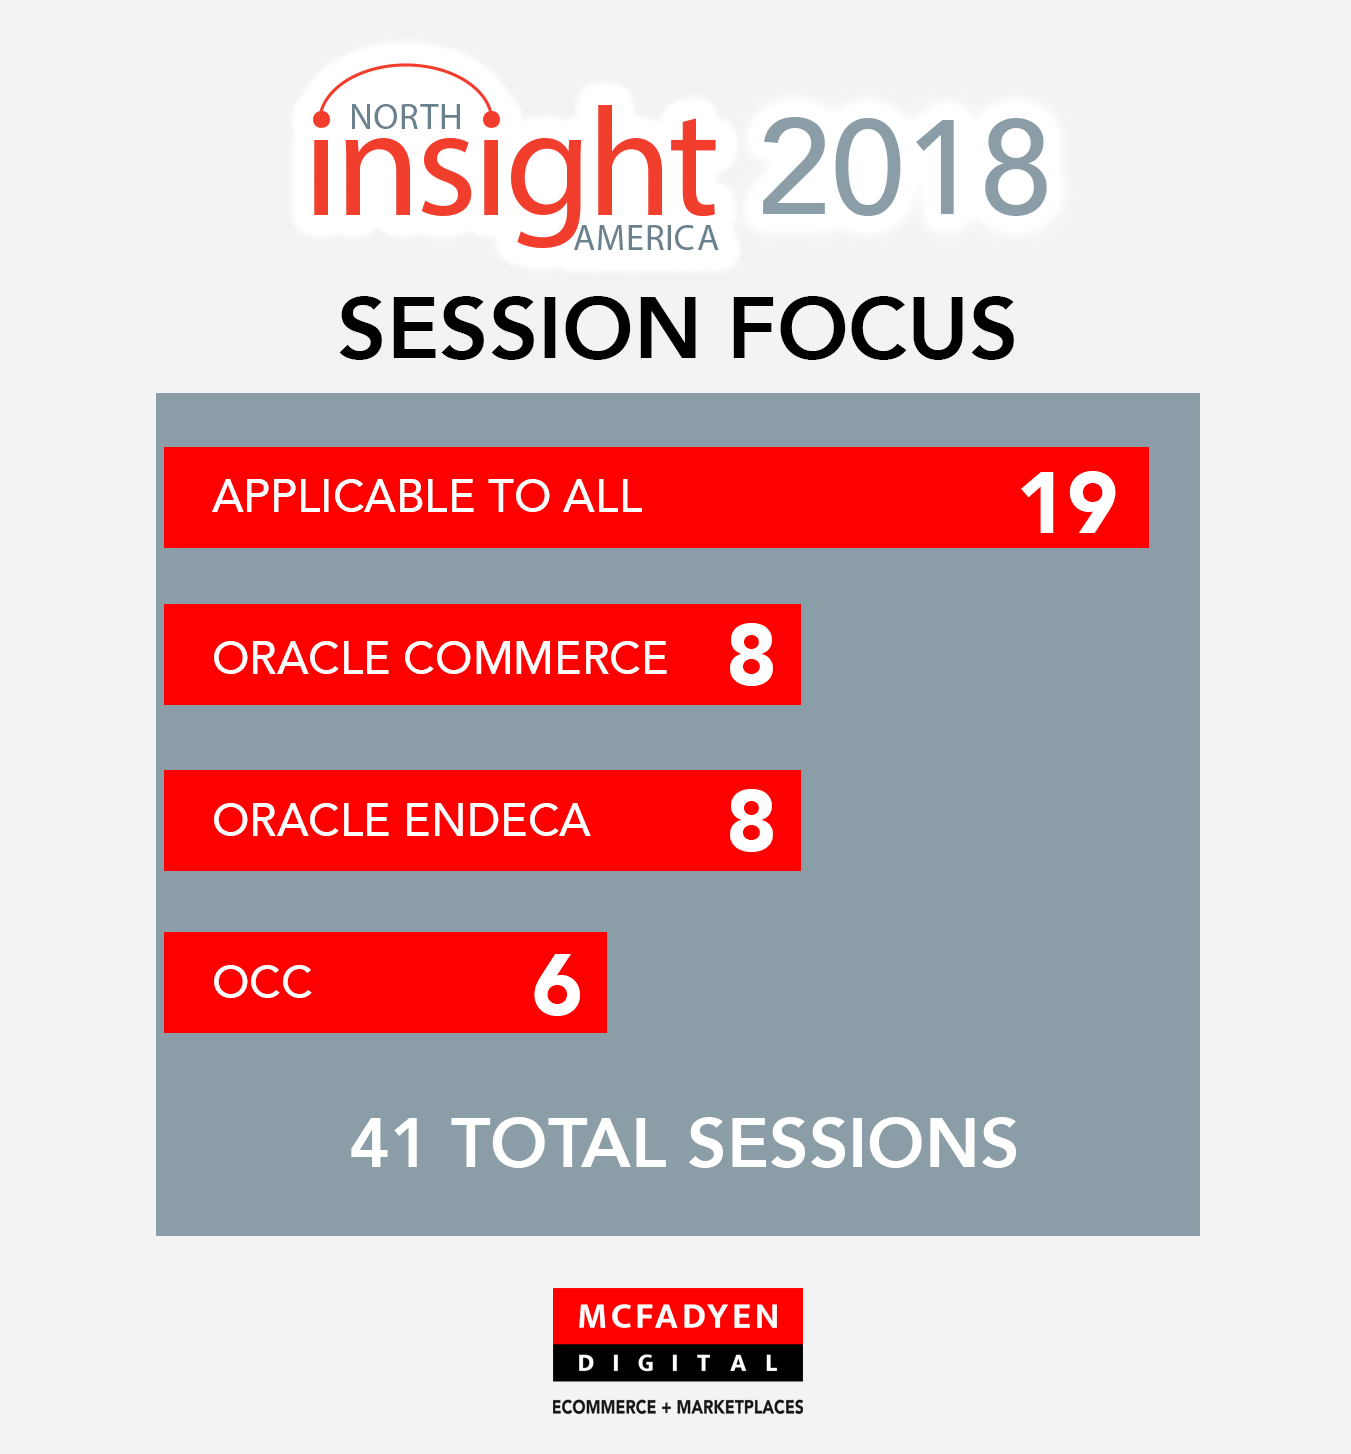 Insight 2018 - Sessions by Topic